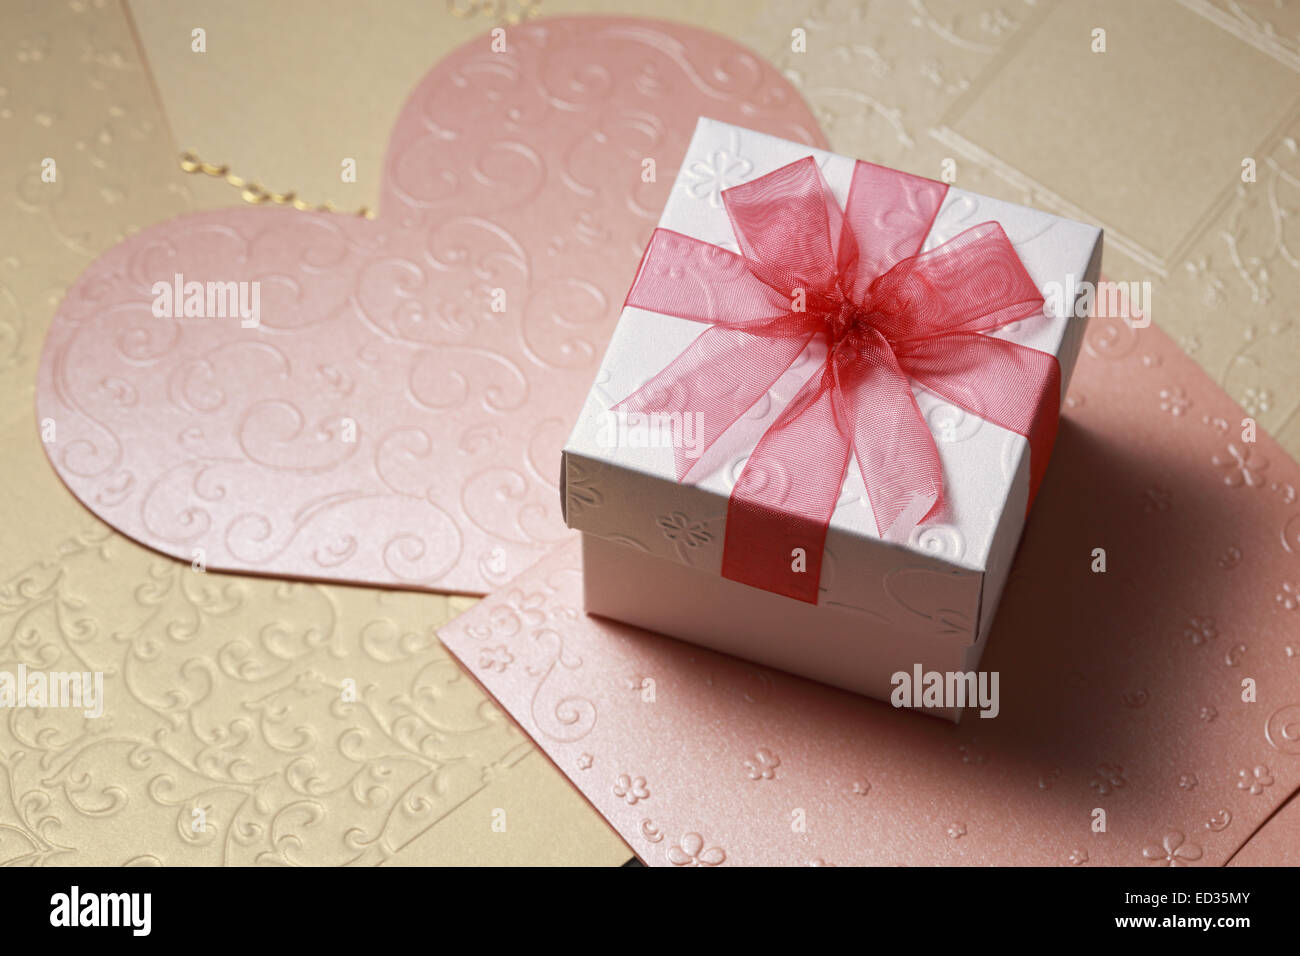 the gift box on greeting card for celebration events - Stock Image